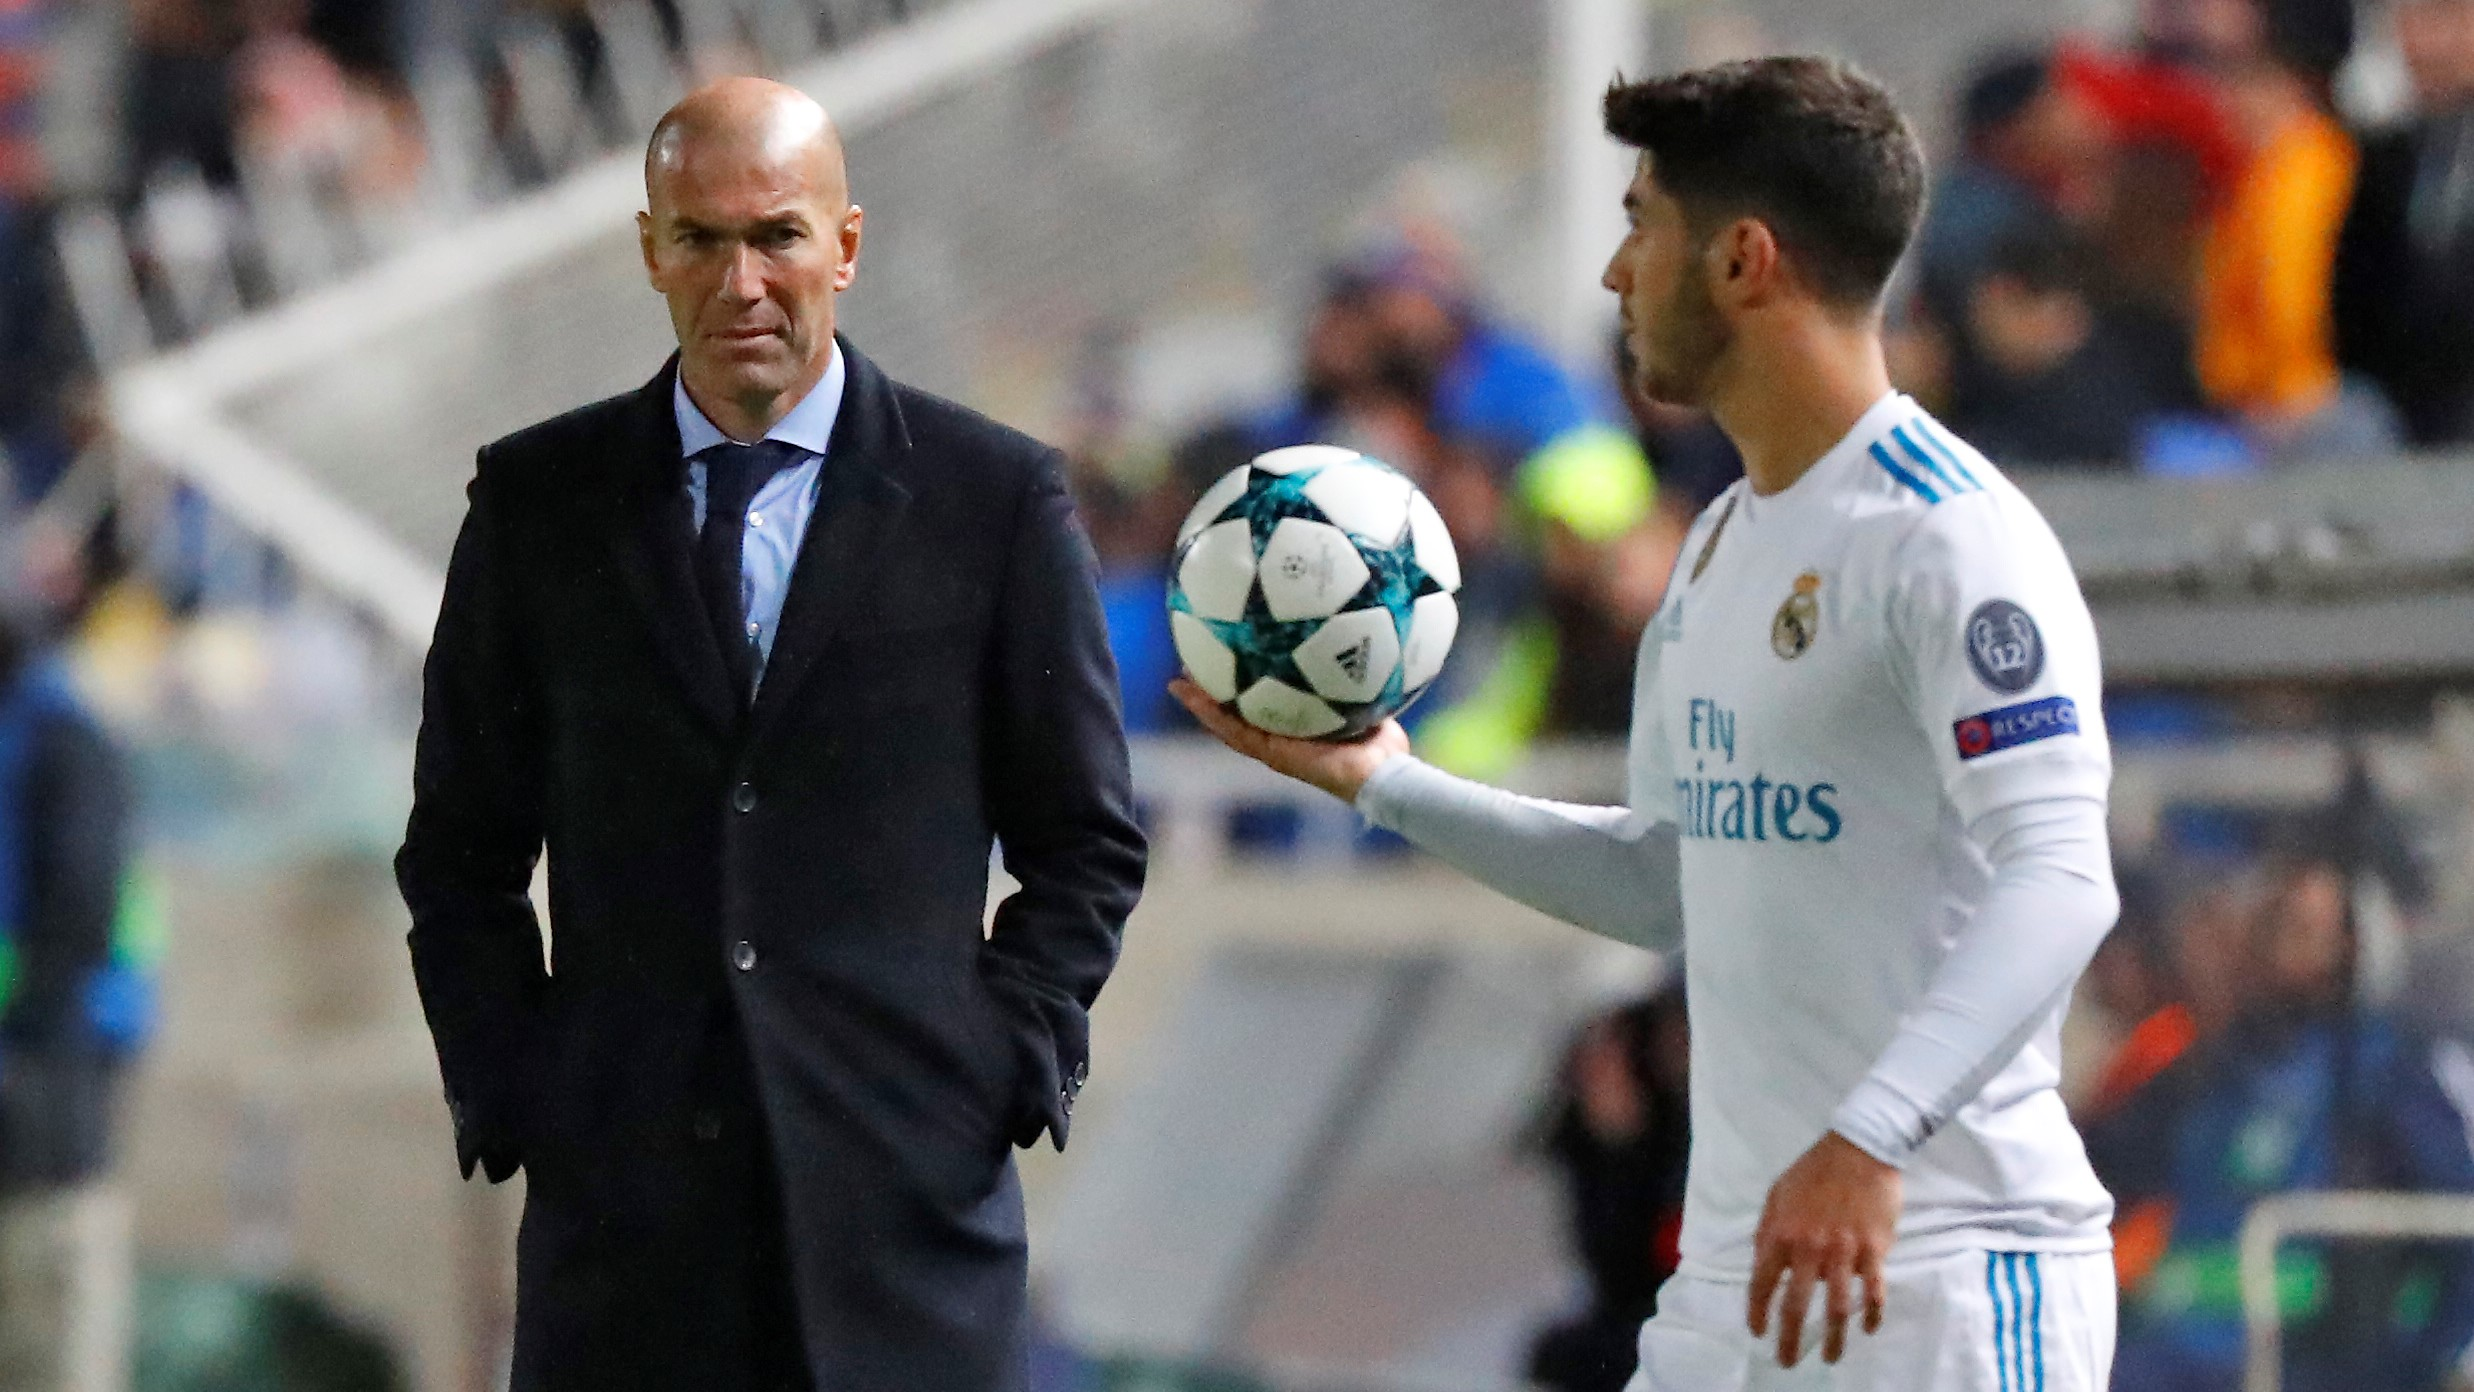 https://images.performgroup.com/di/library/GOAL/fd/be/marco-asensio-zinedine-zidane-apoel-real-madrid-ucl-21112017_zeriy5e07r6g15y5j0840gpi3.jpg